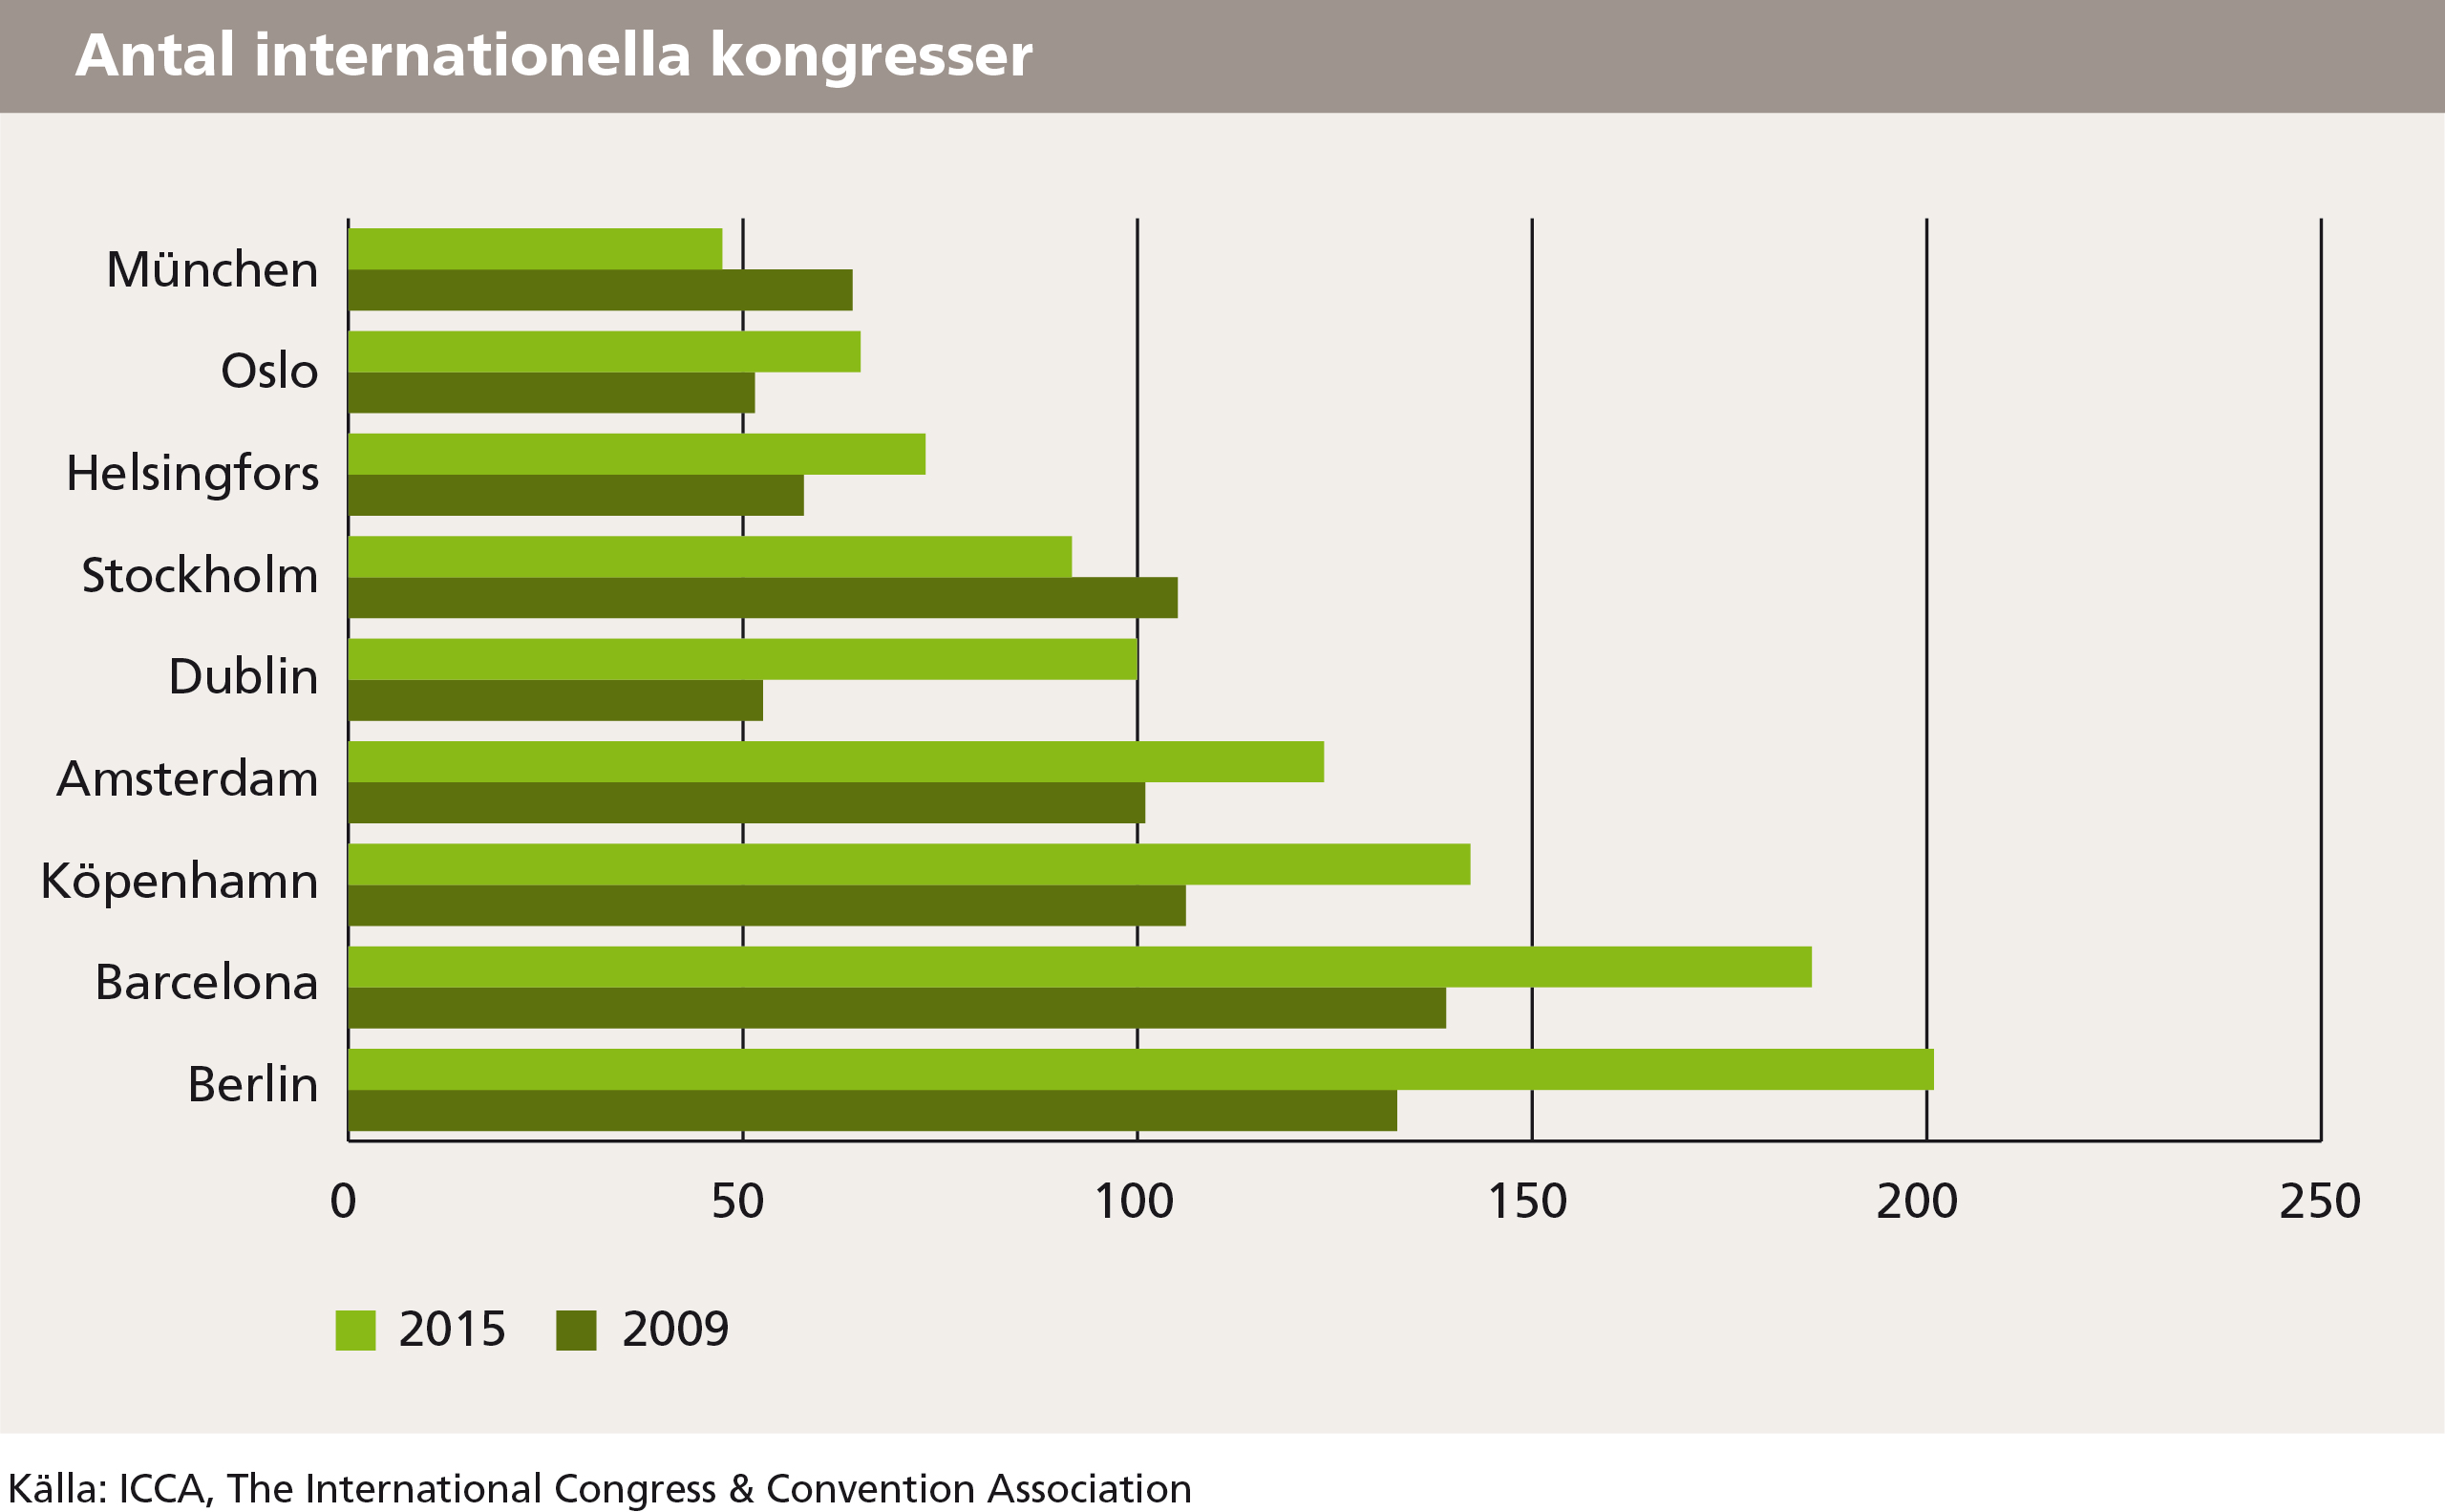 Antal internationella kongresser